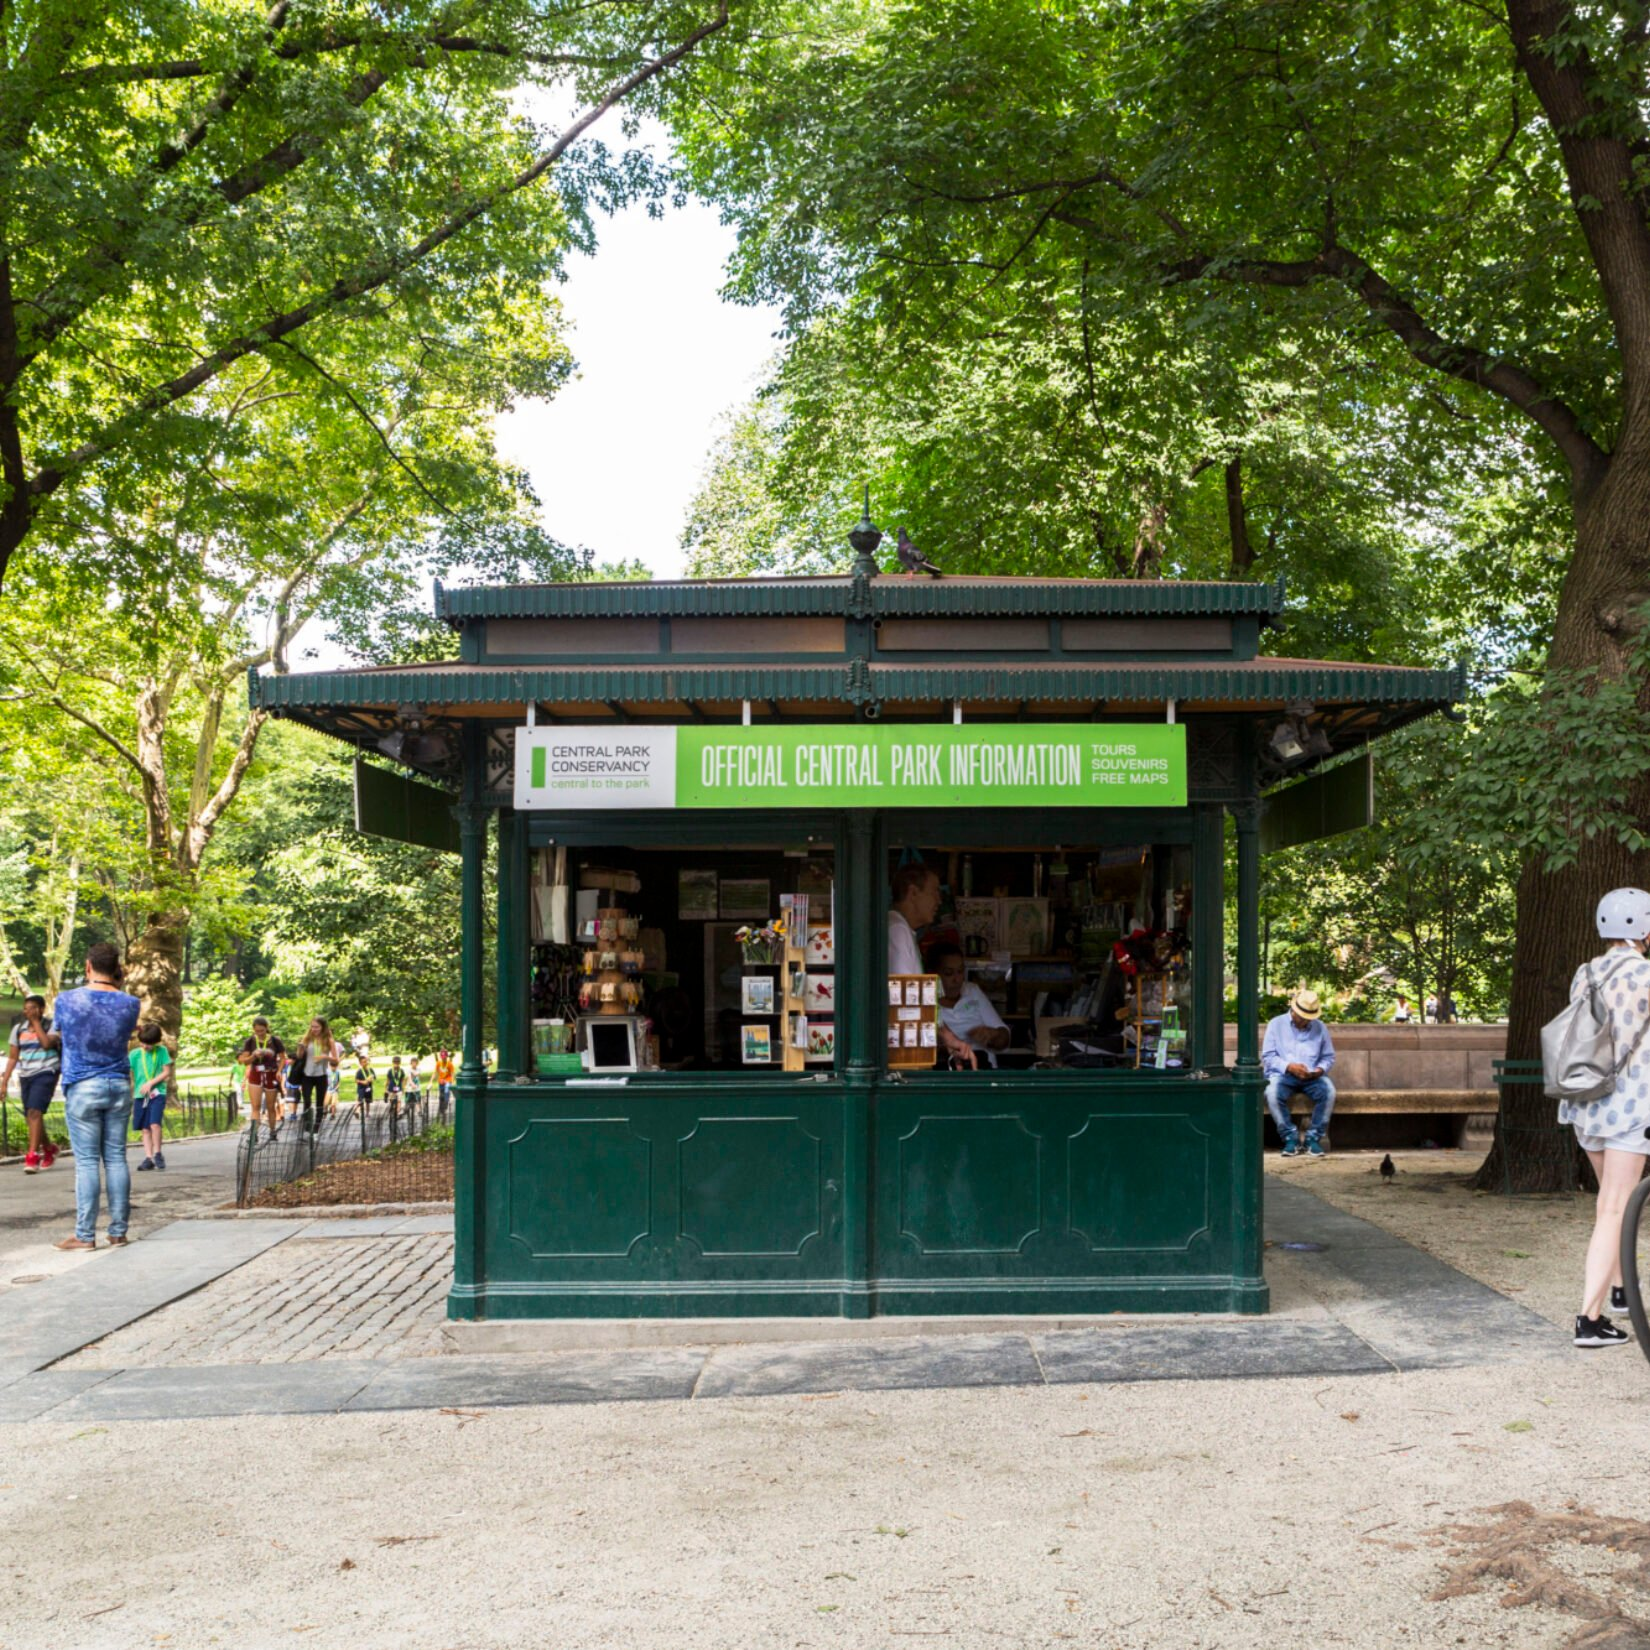 The kiosk is seen framed by summer trees and passing pedestrians.